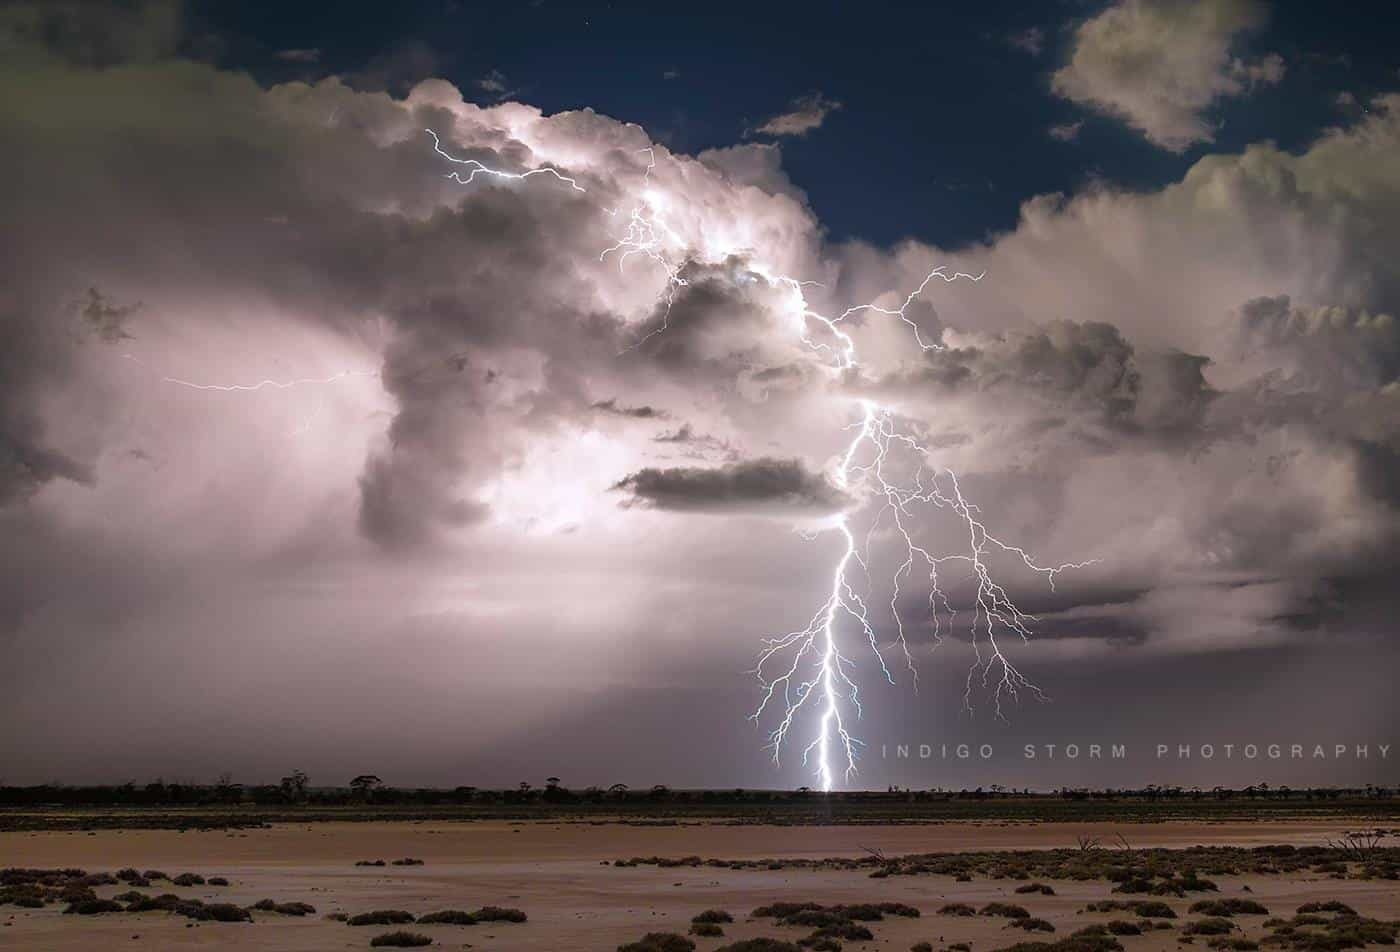 Captured on Sunday 25th October 2015 in the Central Wheatbelt of Western Australia. This was one of a series of storms that passed over the area between 4pm and 1am.